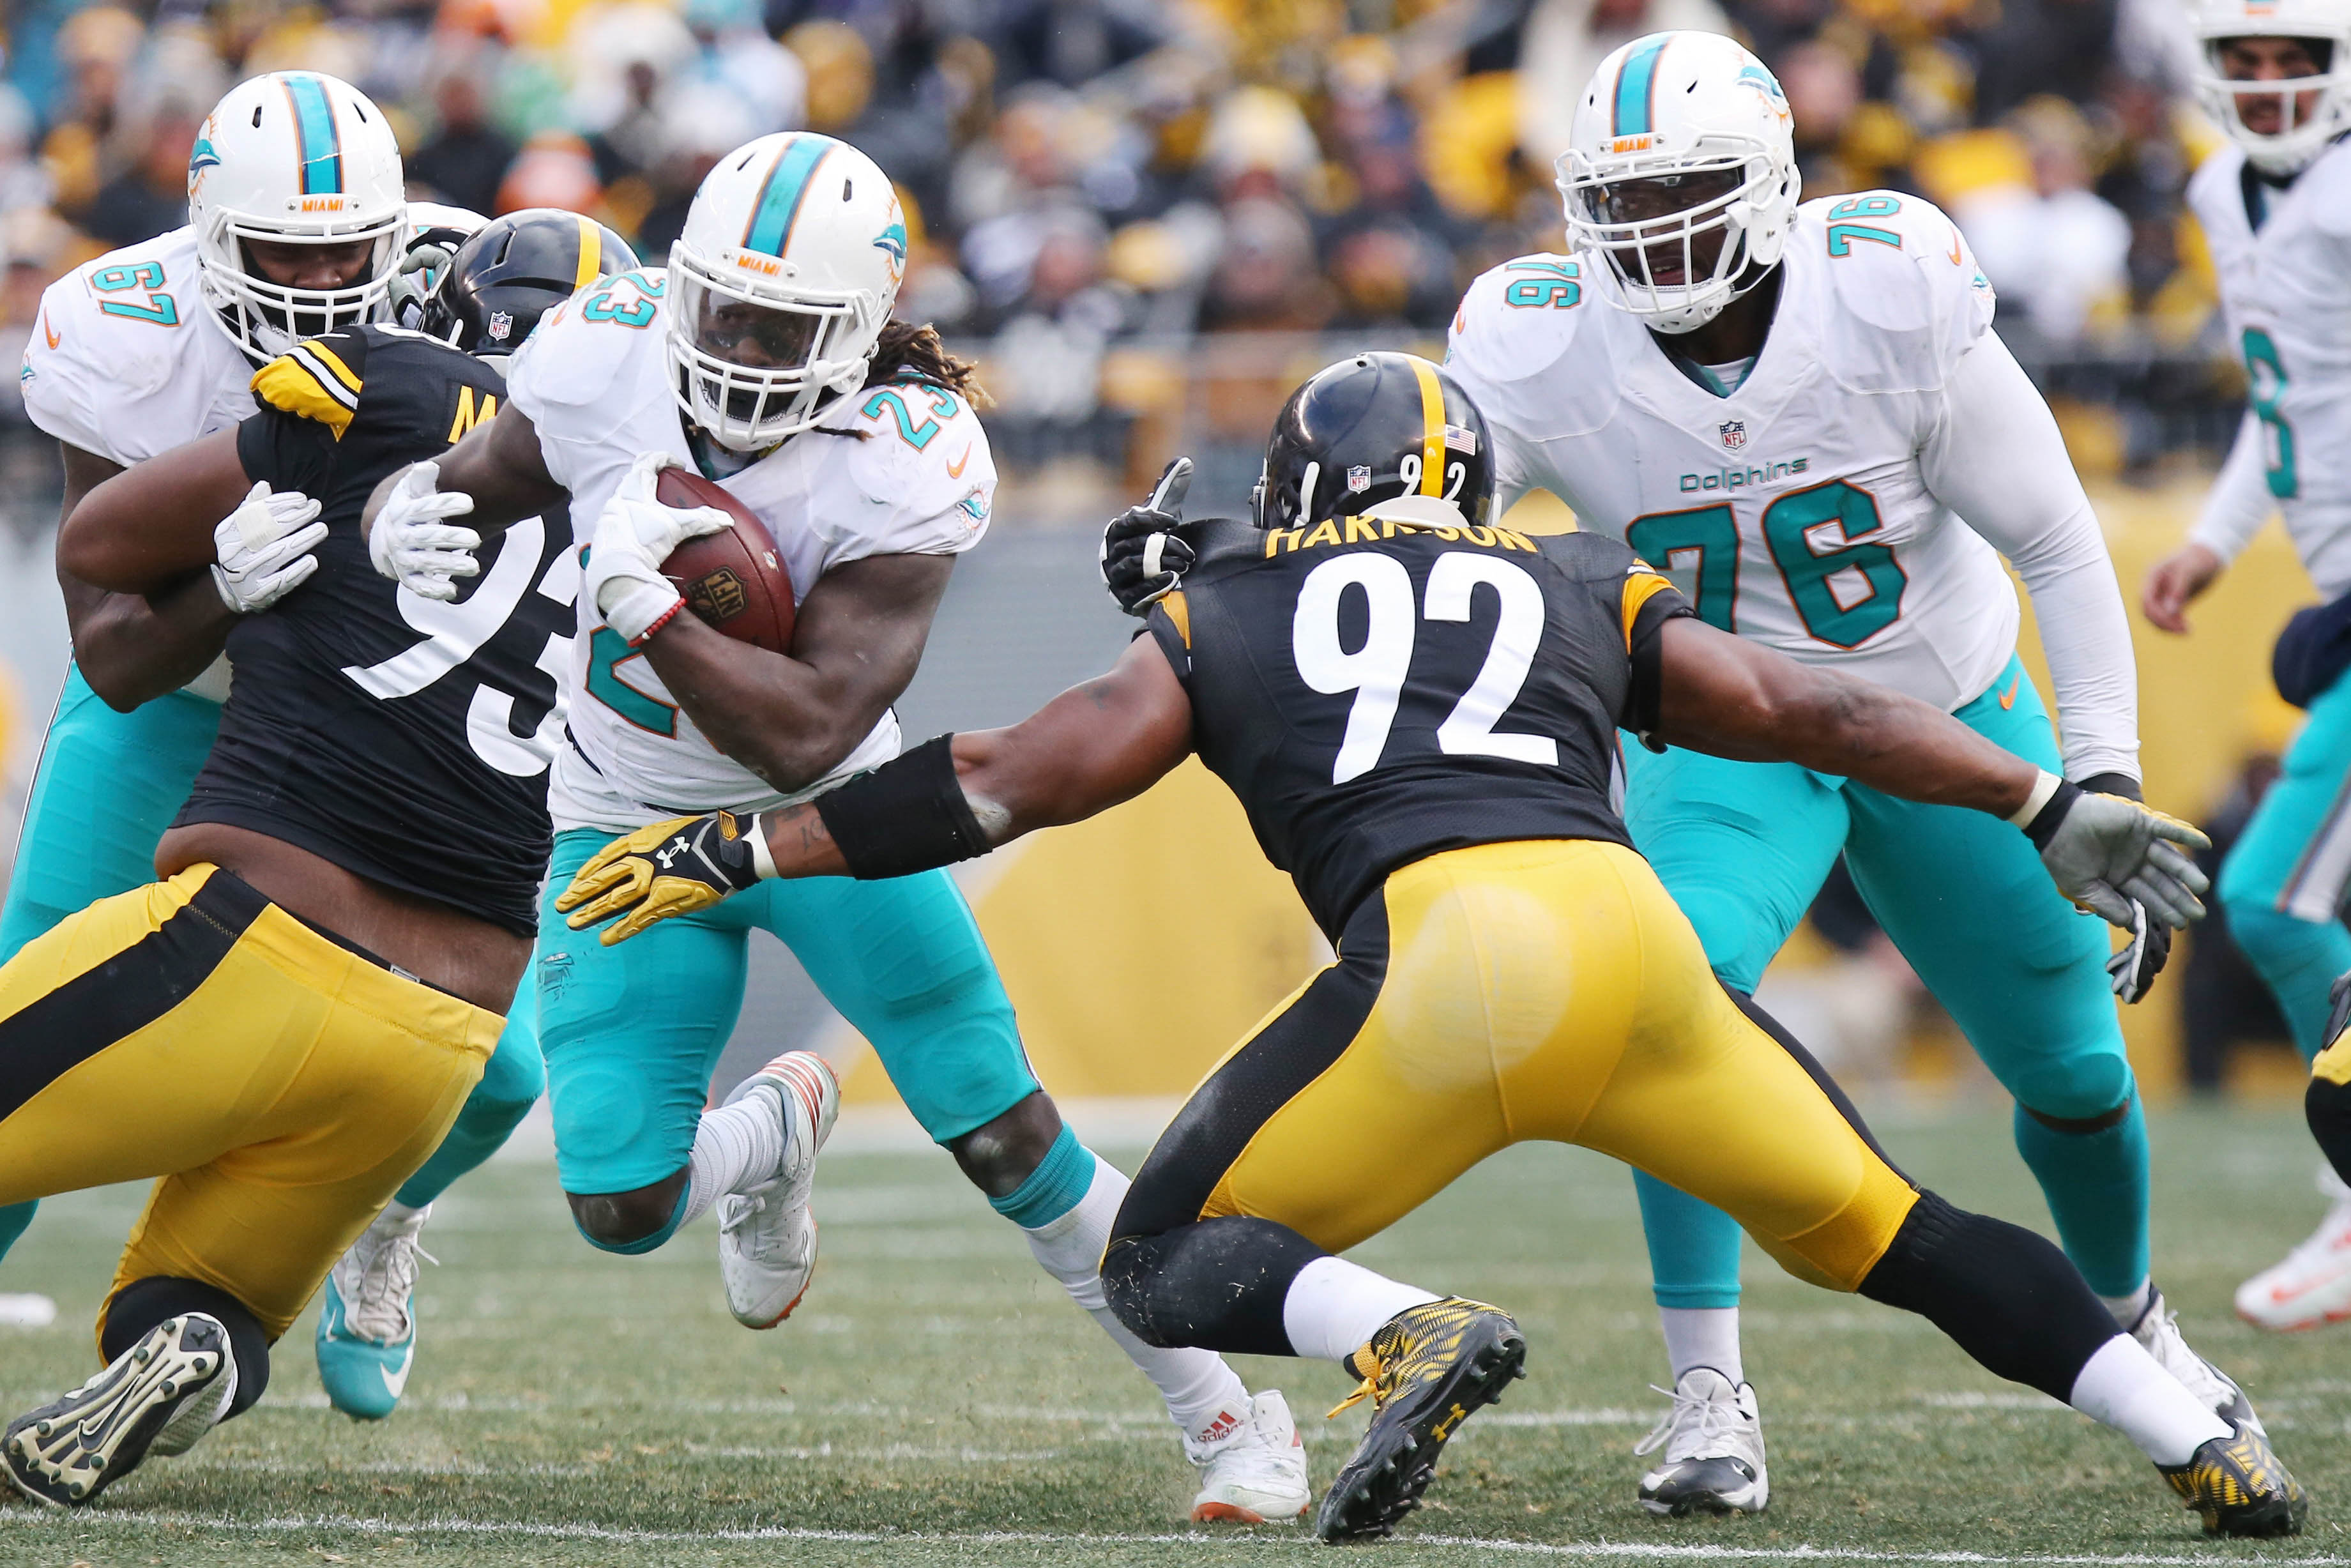 9805632-nfl-afc-wild-card-miami-dolphins-at-pittsburgh-steelers